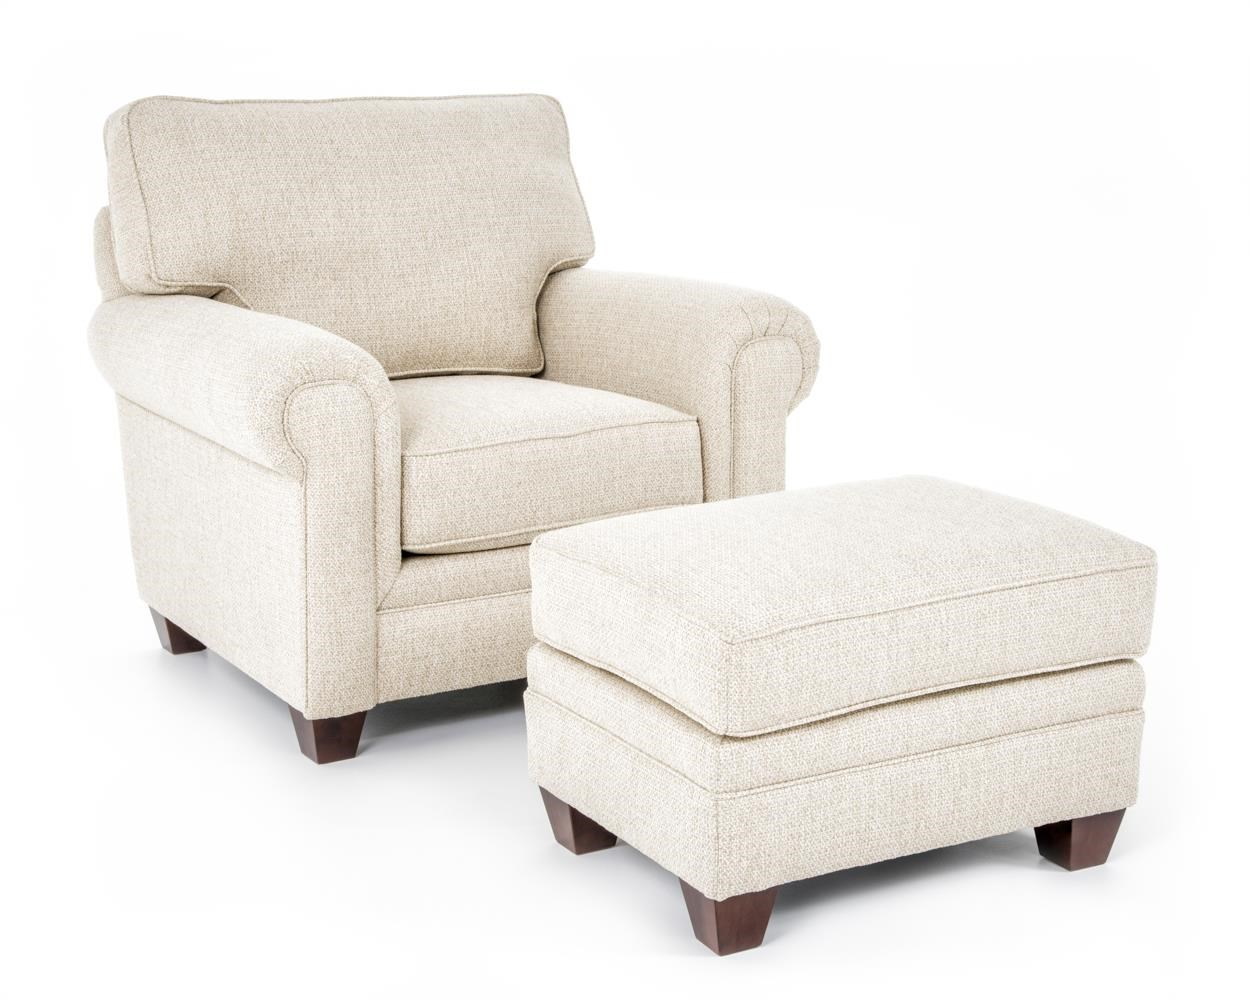 Broyhill Furniture Monica Chair and Ottoman - Item Number: 3678-0+5